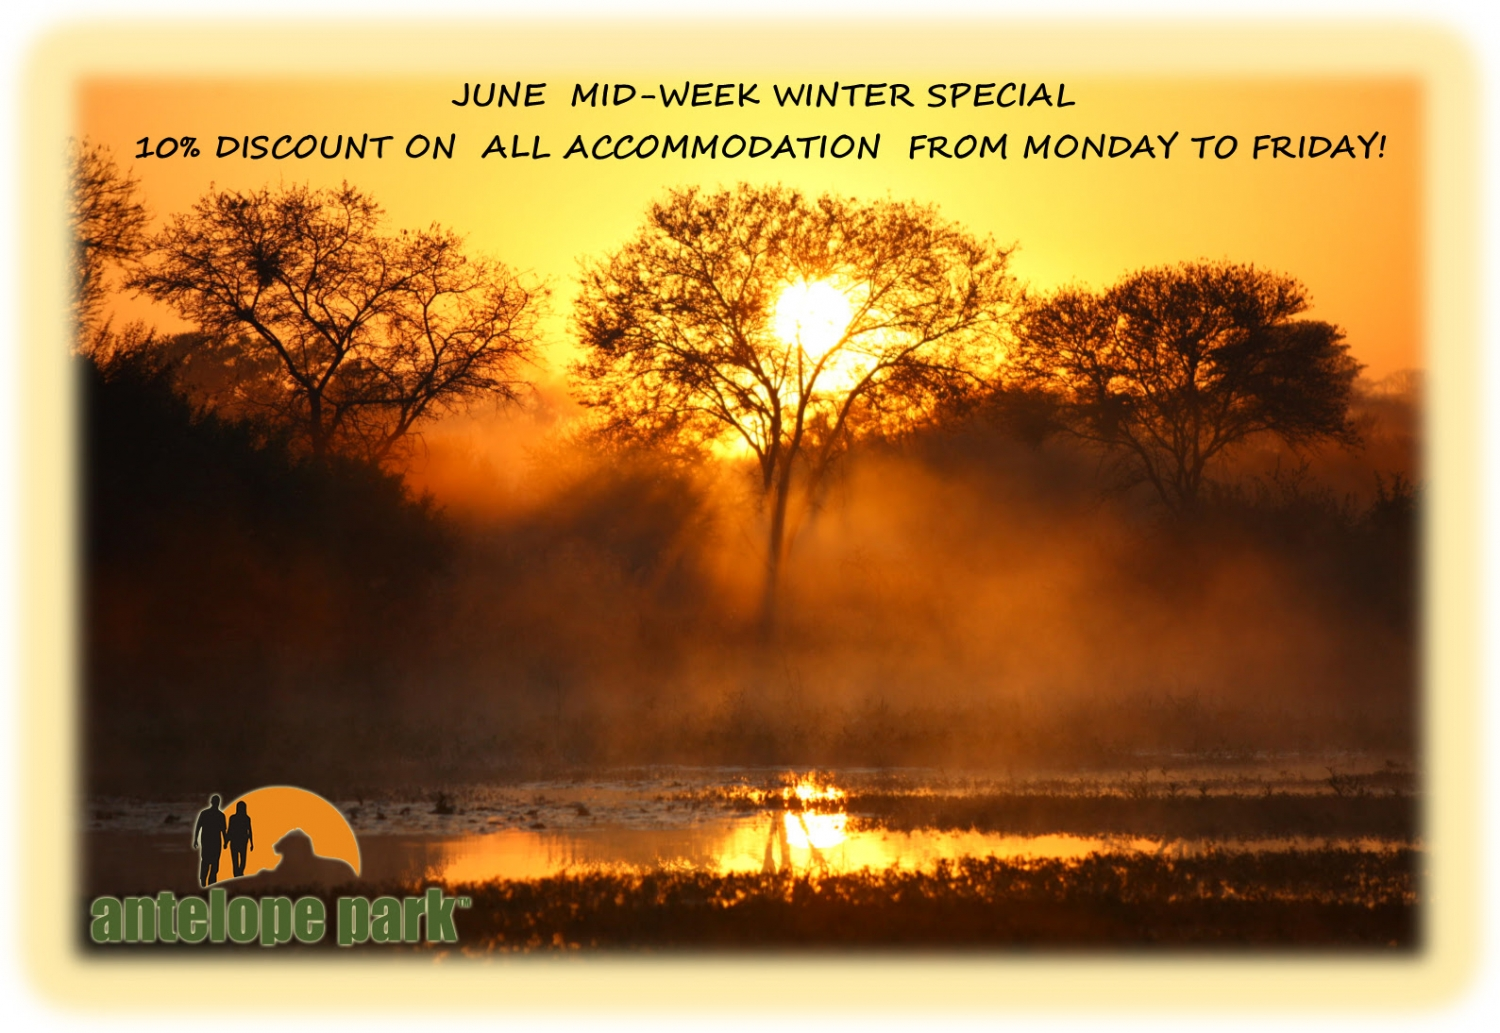 Winter Specials at Antelope Park